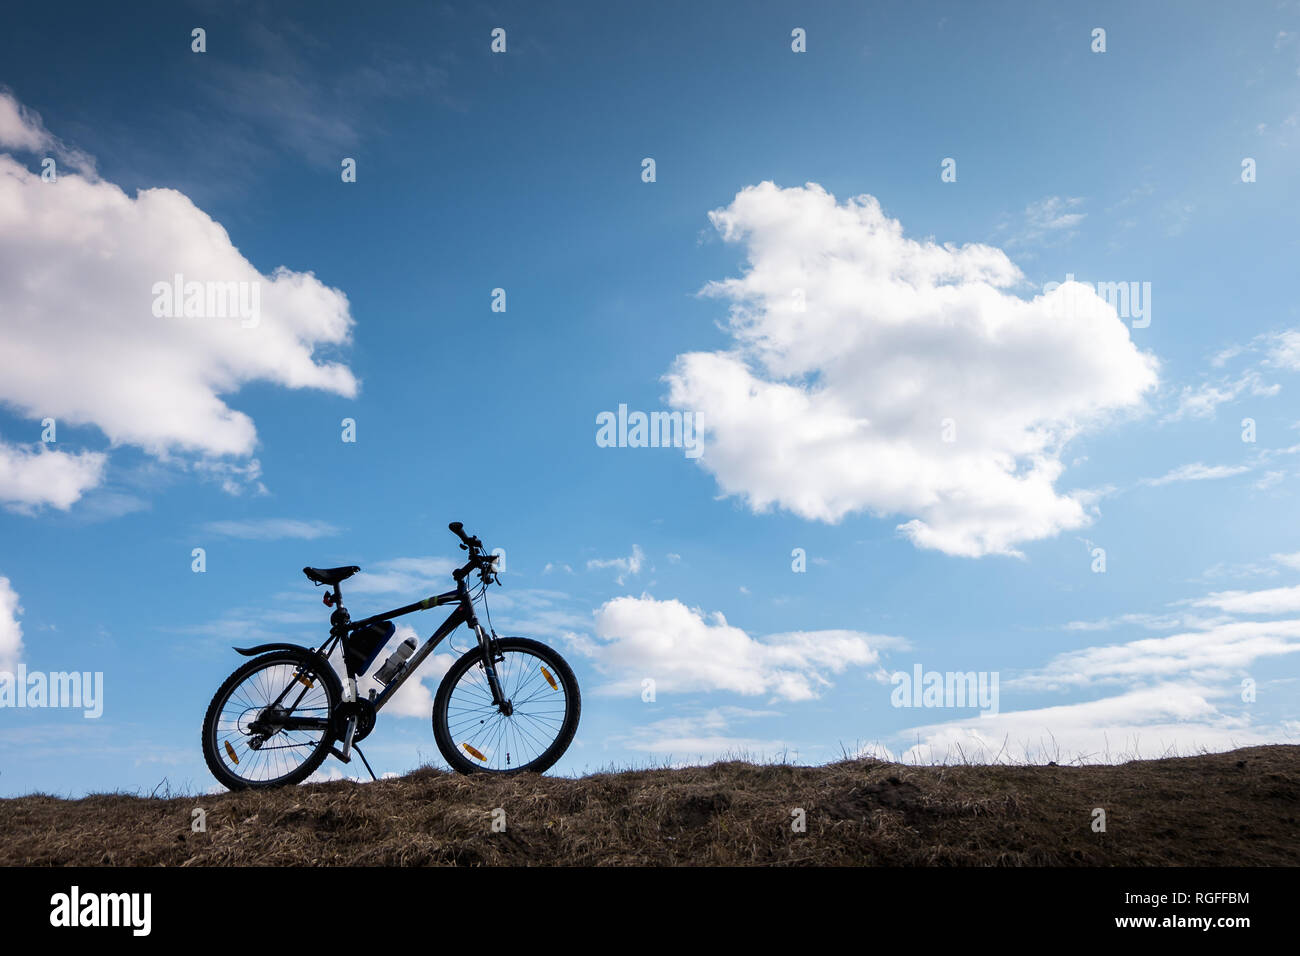 Bike silhouette in blue sky with clouds. symbol of independence and freedom - Stock Image